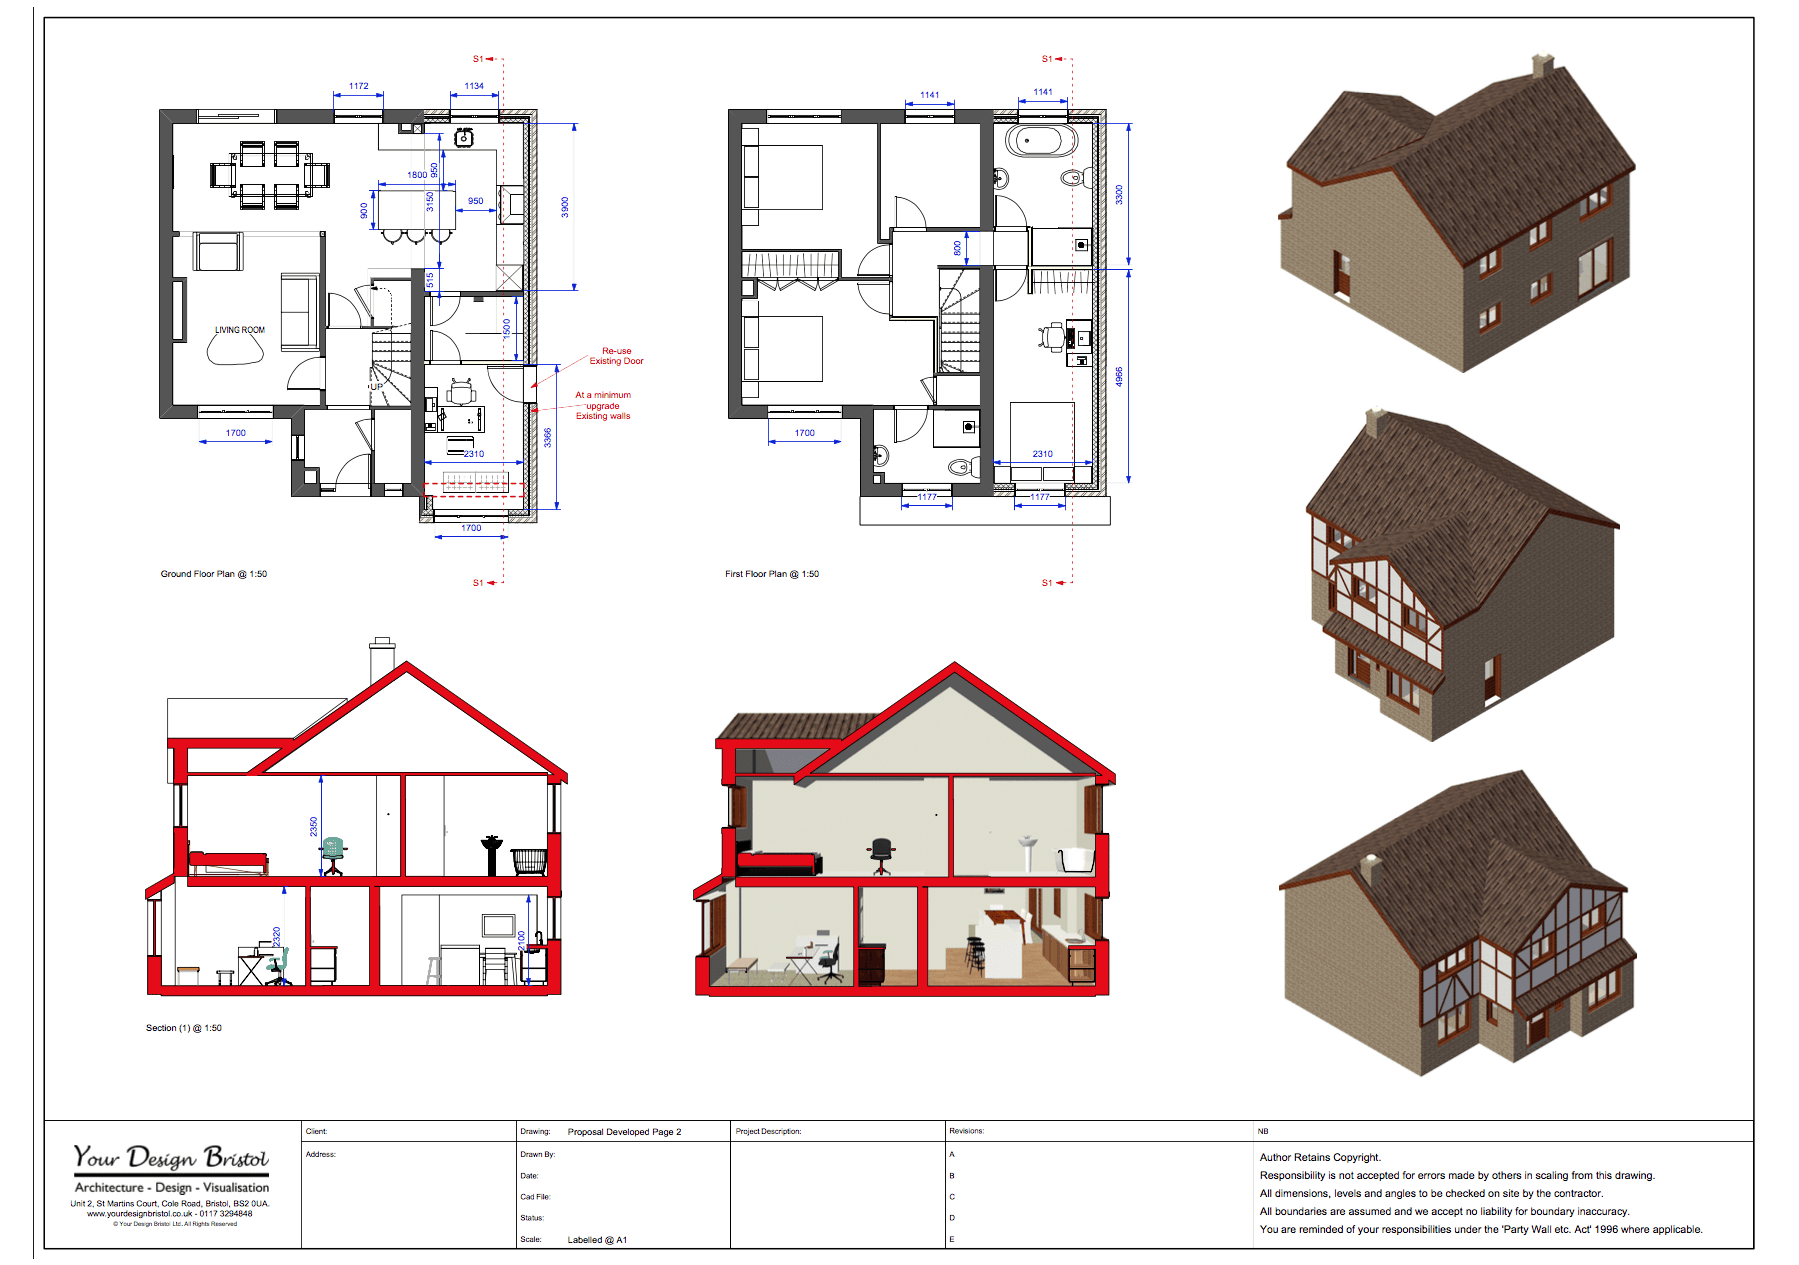 House Extension Design and Visualisation